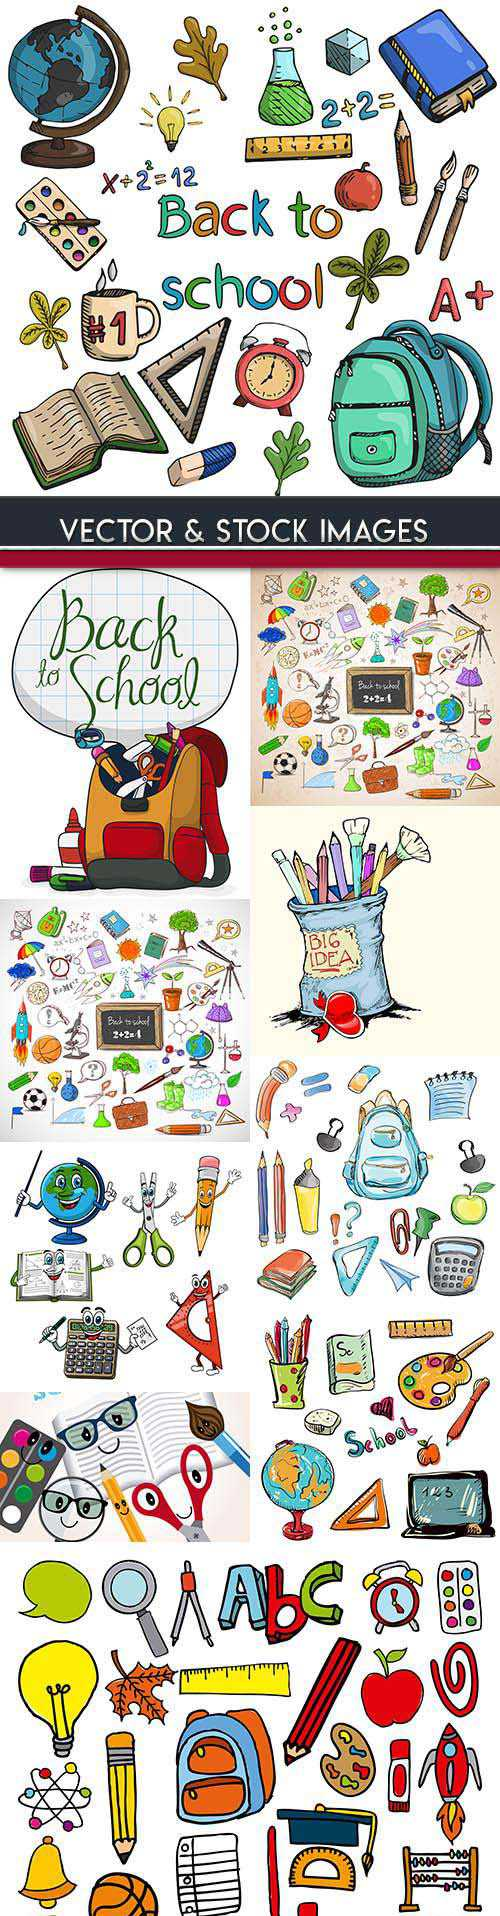 Back to school and accessories collection illustrations 23